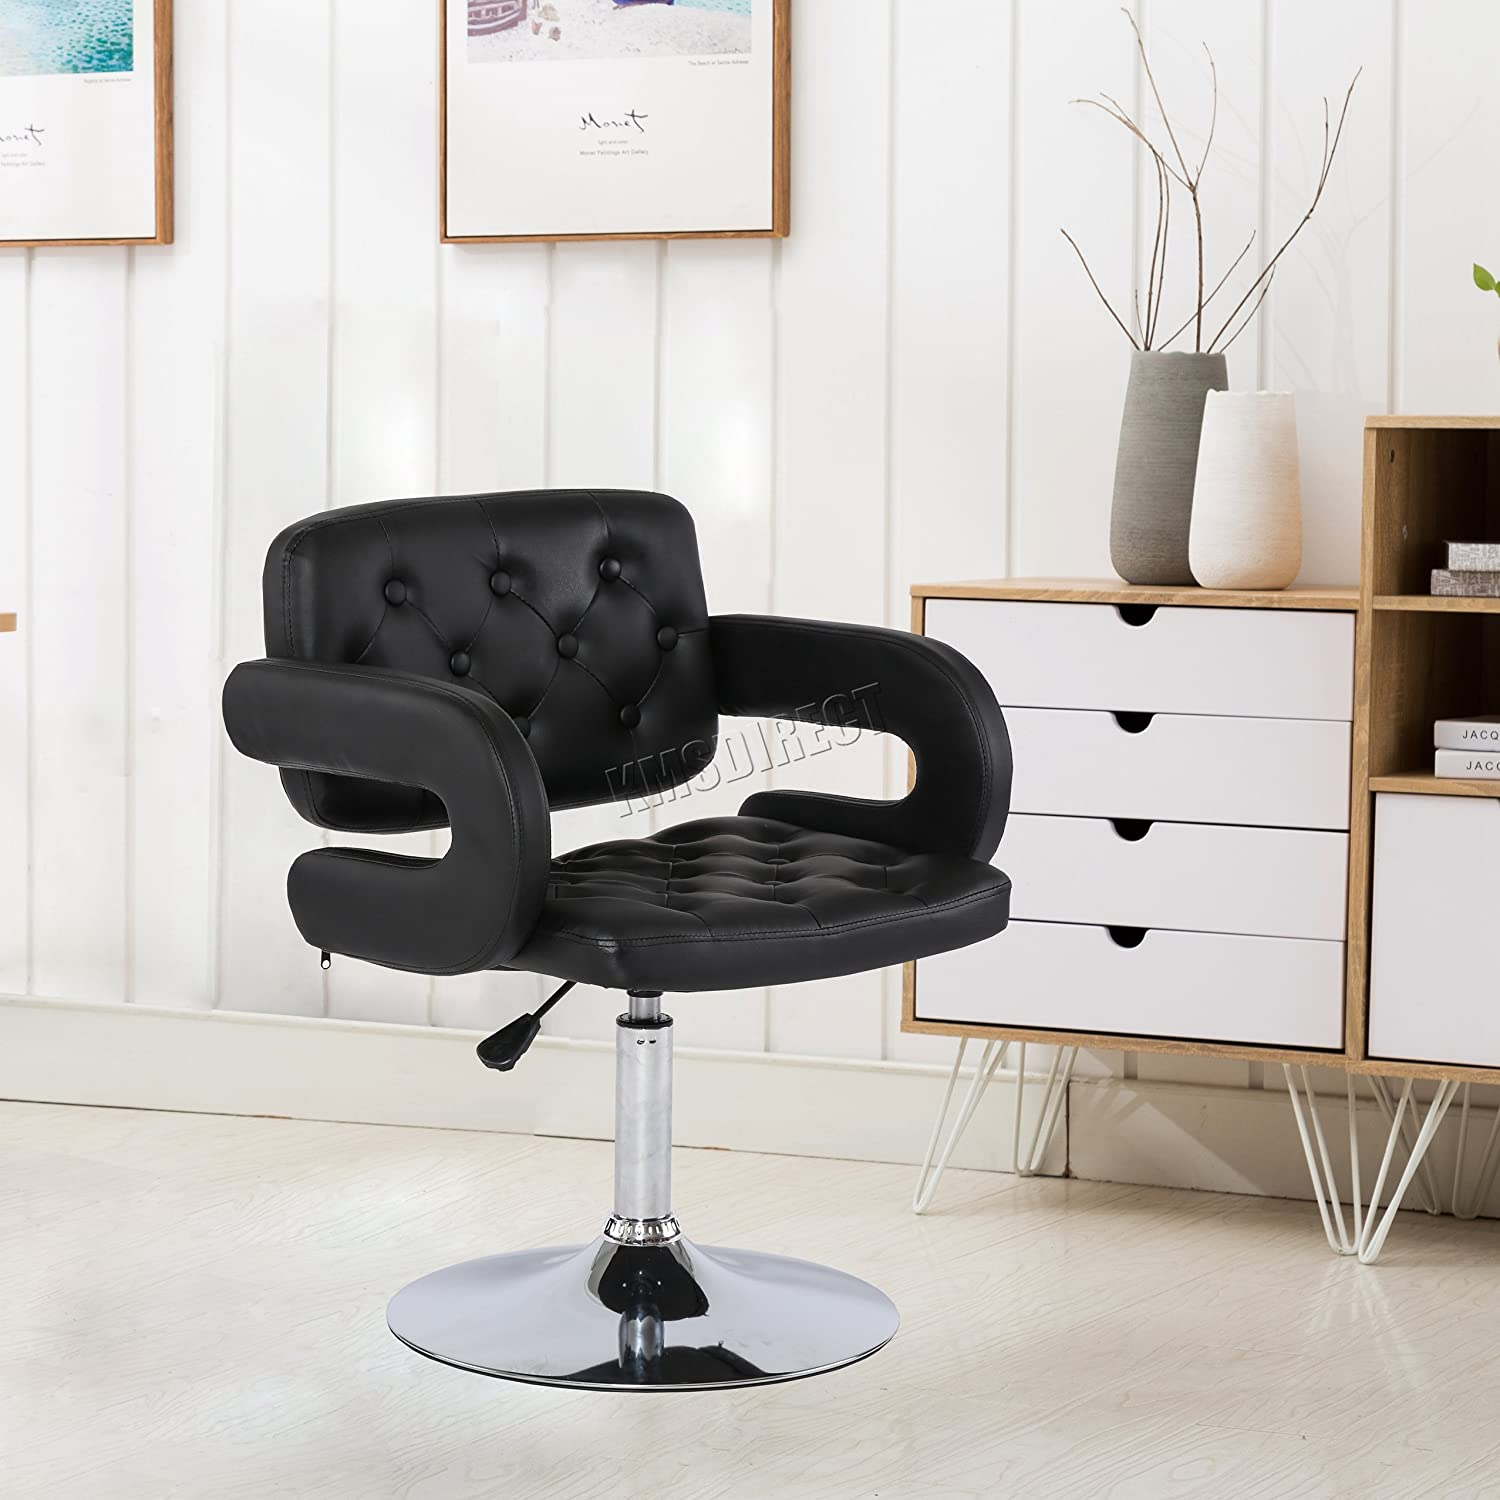 WestWood Modern Beauty Salon Barber Chair Professional Hairdressing Hair Cut Shaving Styling Classic Fashion Hydraulic Lift Adjustable Height PU Leather SC02 Black KMS